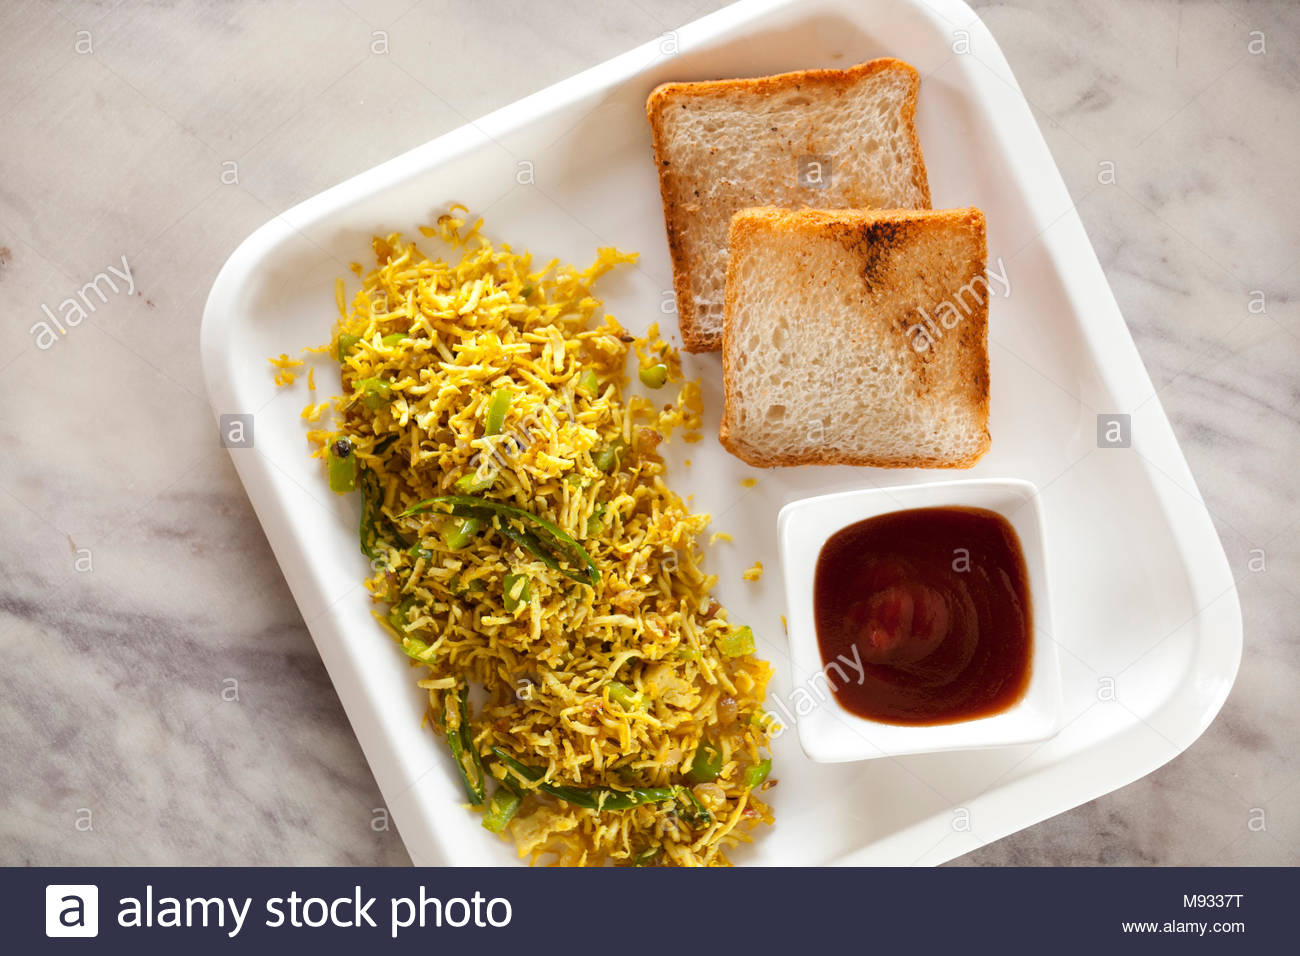 Tofu scramble is a popular snack and quick breakfast with tofu. This is a vegan and vegetarian snack. - Stock Image